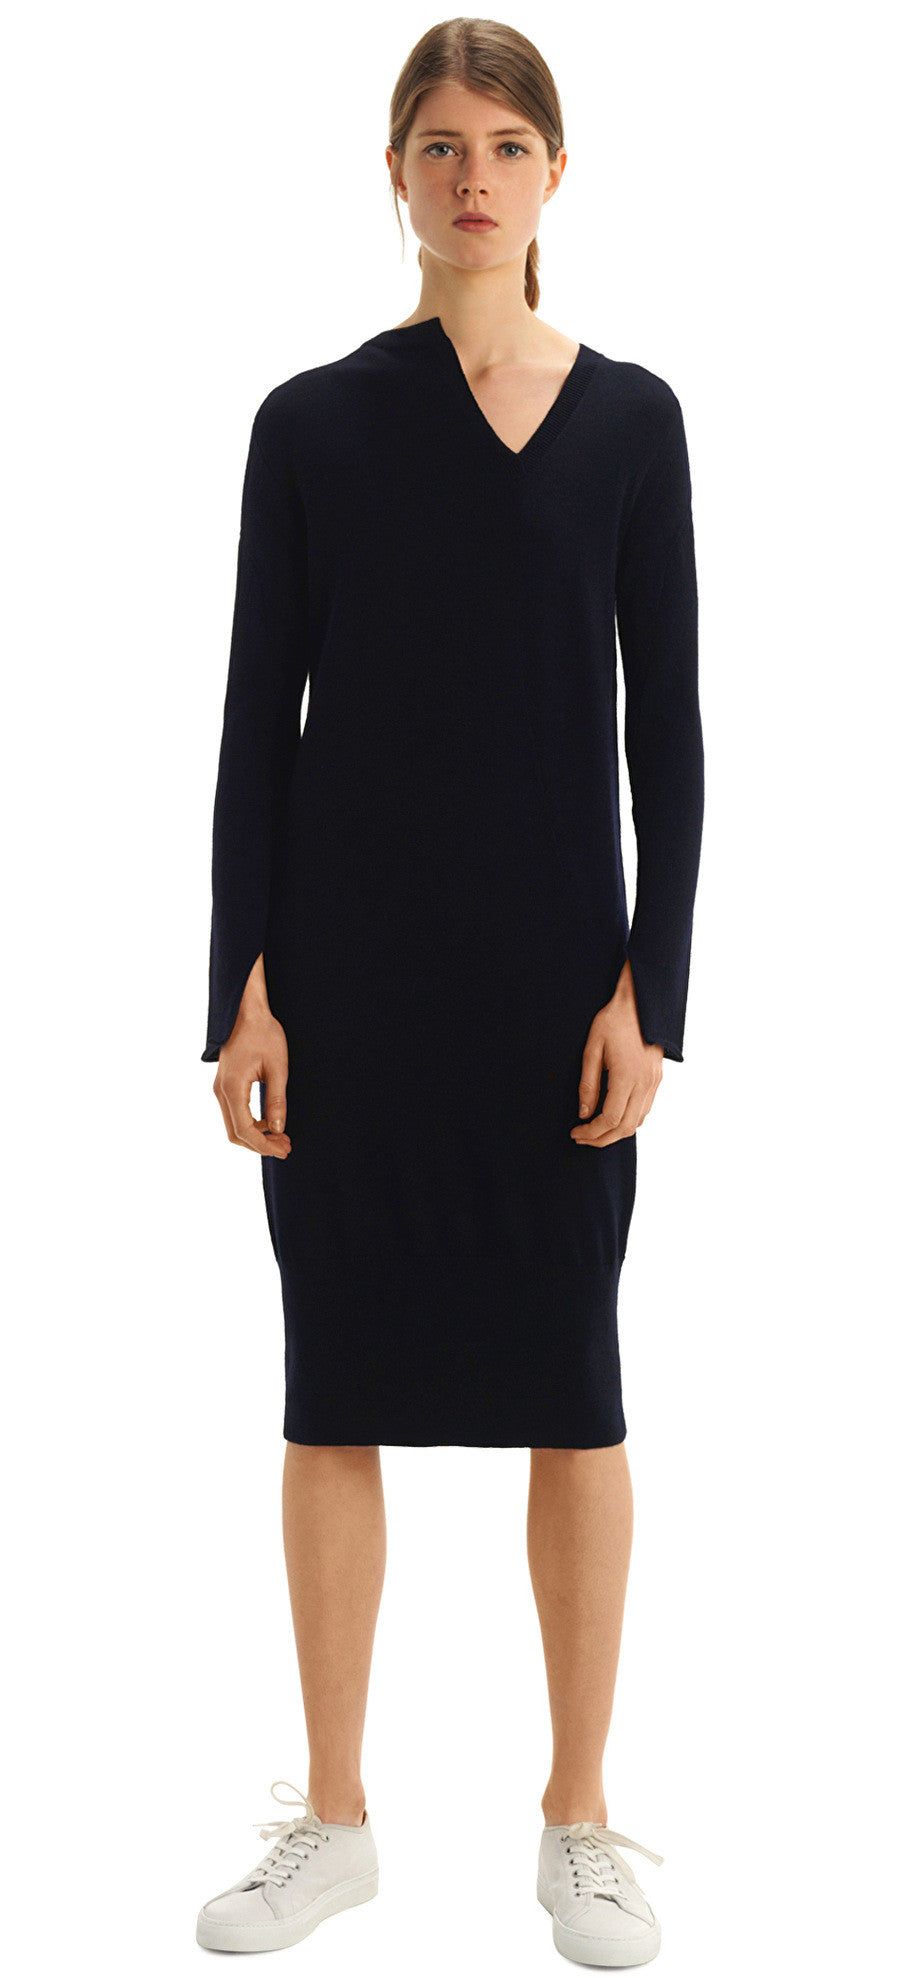 SEME NAVY DRESS